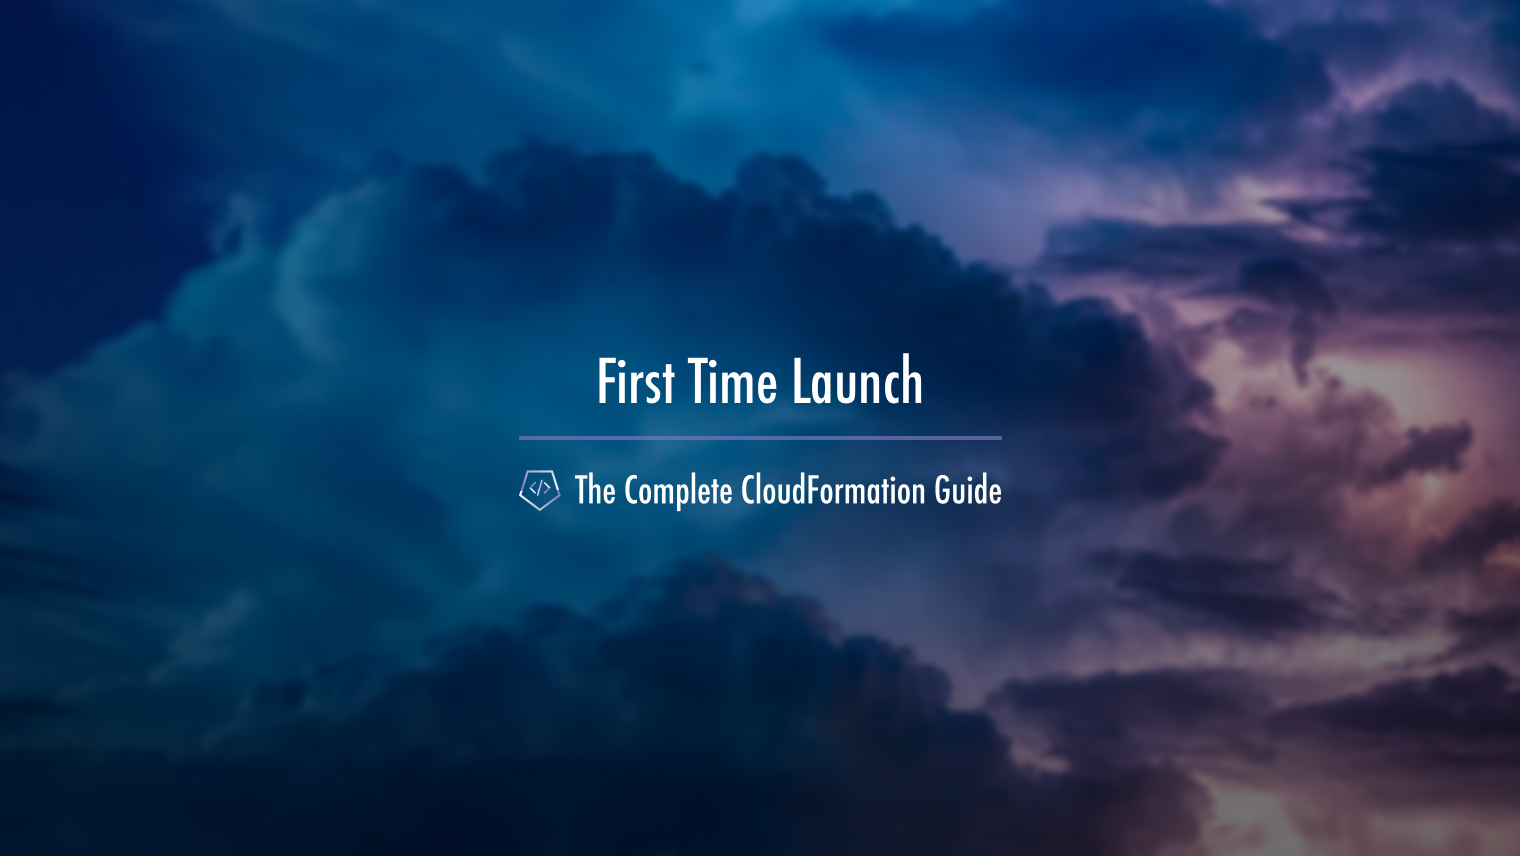 The Complete CloudFormation Guide launching your template from the AWS console